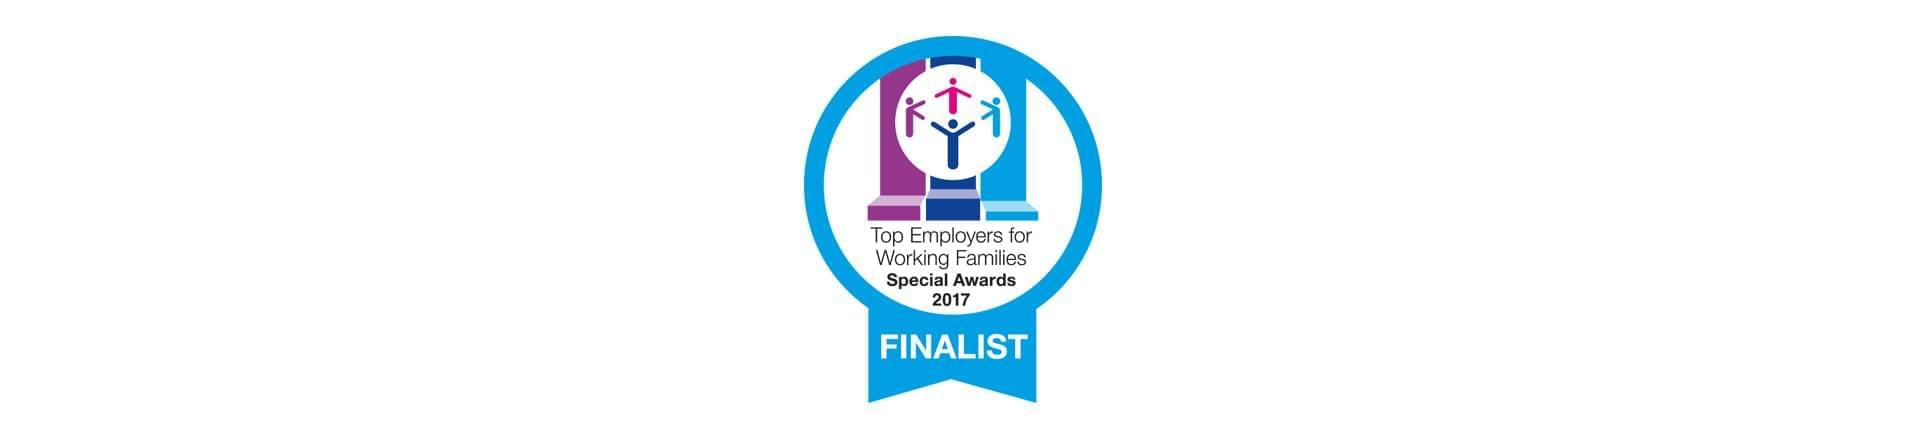 the Top Employers for Working Families Special Awards 2017 Finalist logo